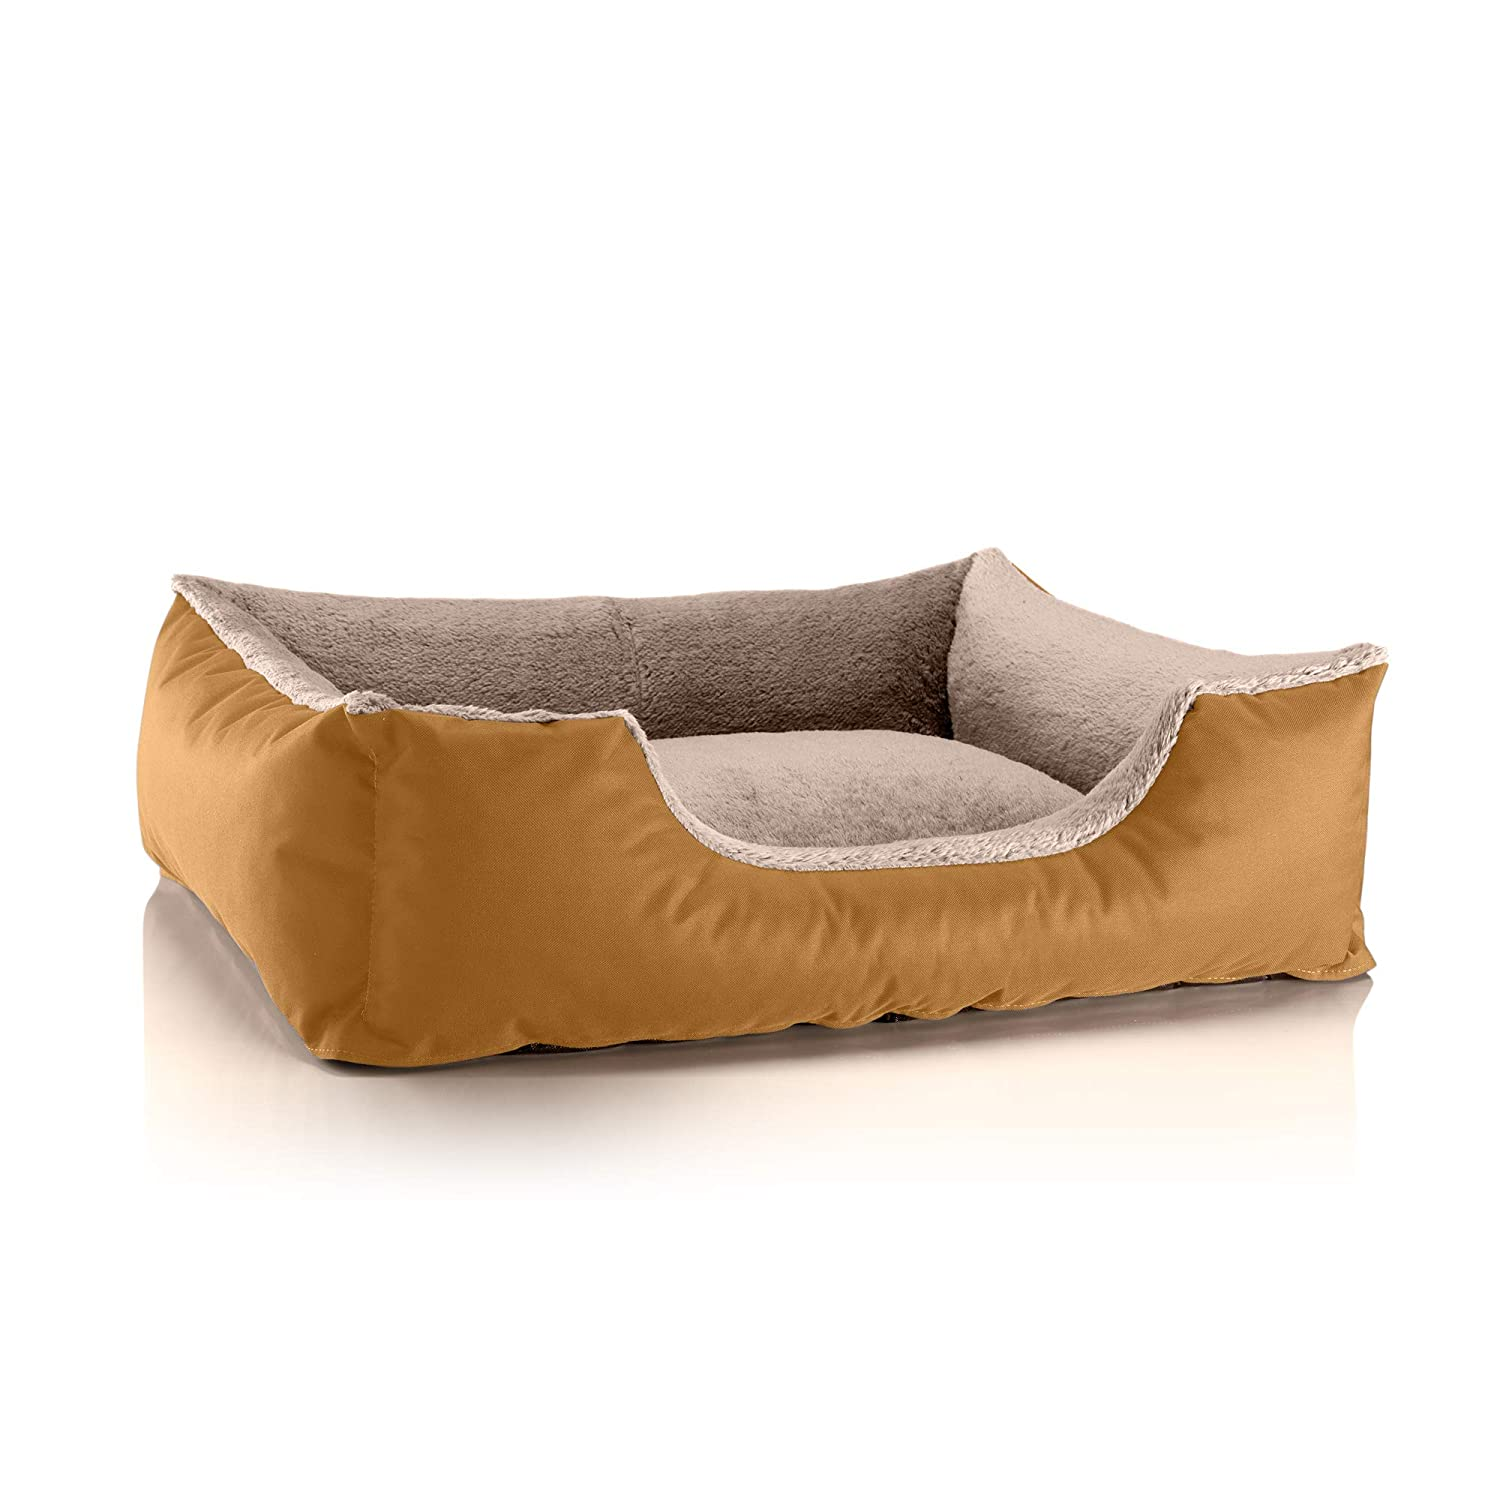 goldENSAND (gold beige) L (ca. 80x65cm)BedDog dog cat sofa TEDDY S to XXXL, 14 colours to choose, made from Cordura & Microfiber Velor, washable dog bed, dog cushion, indoor & outdoor use, size XXXL, grey grey